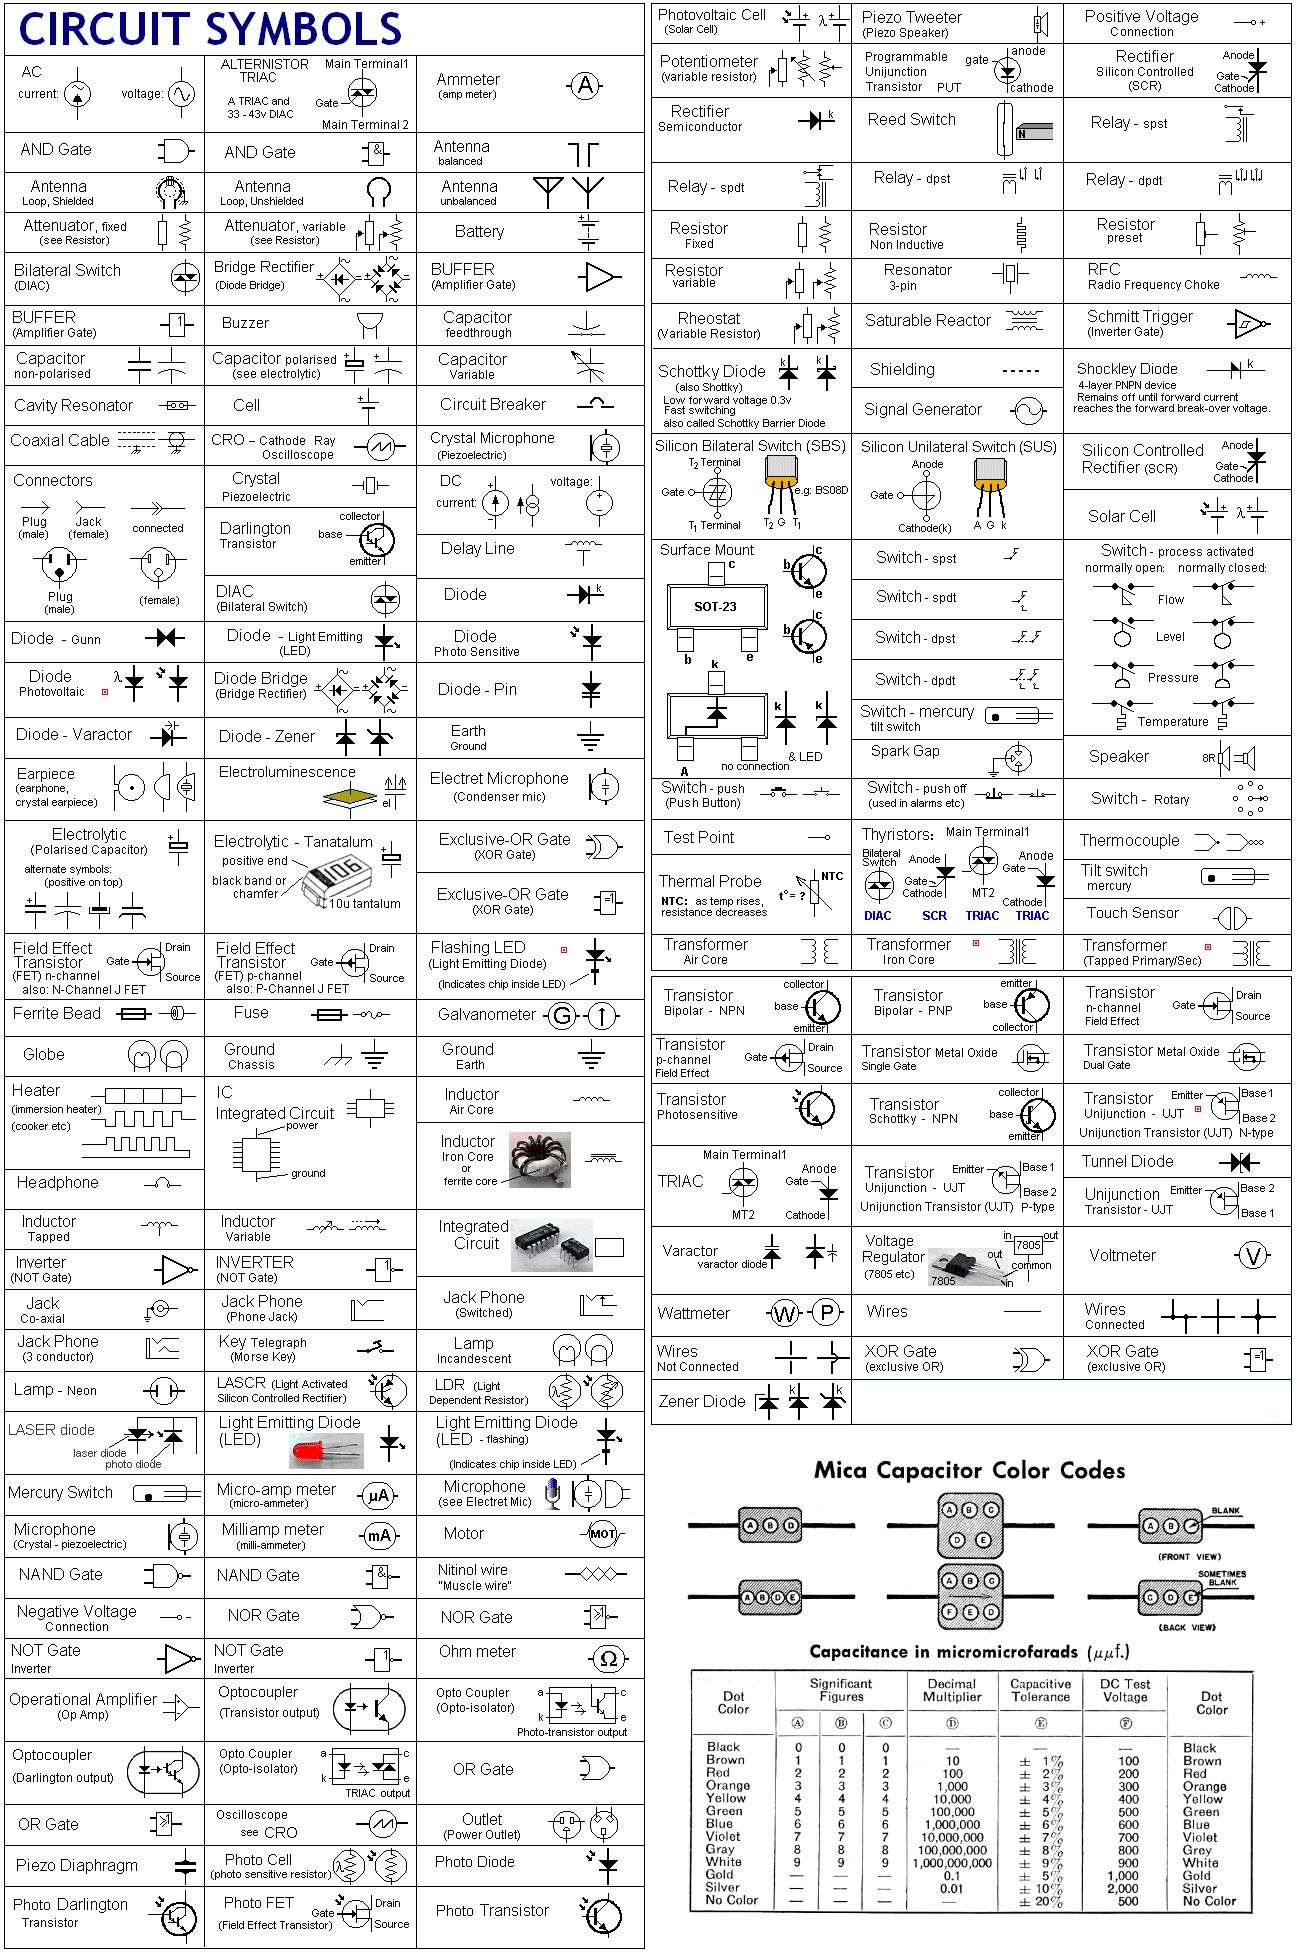 6c64fb84c8e162b28334051891c290f4 schematic symbols chart electric circuit symbols a considerably wiring schematic symbols at edmiracle.co